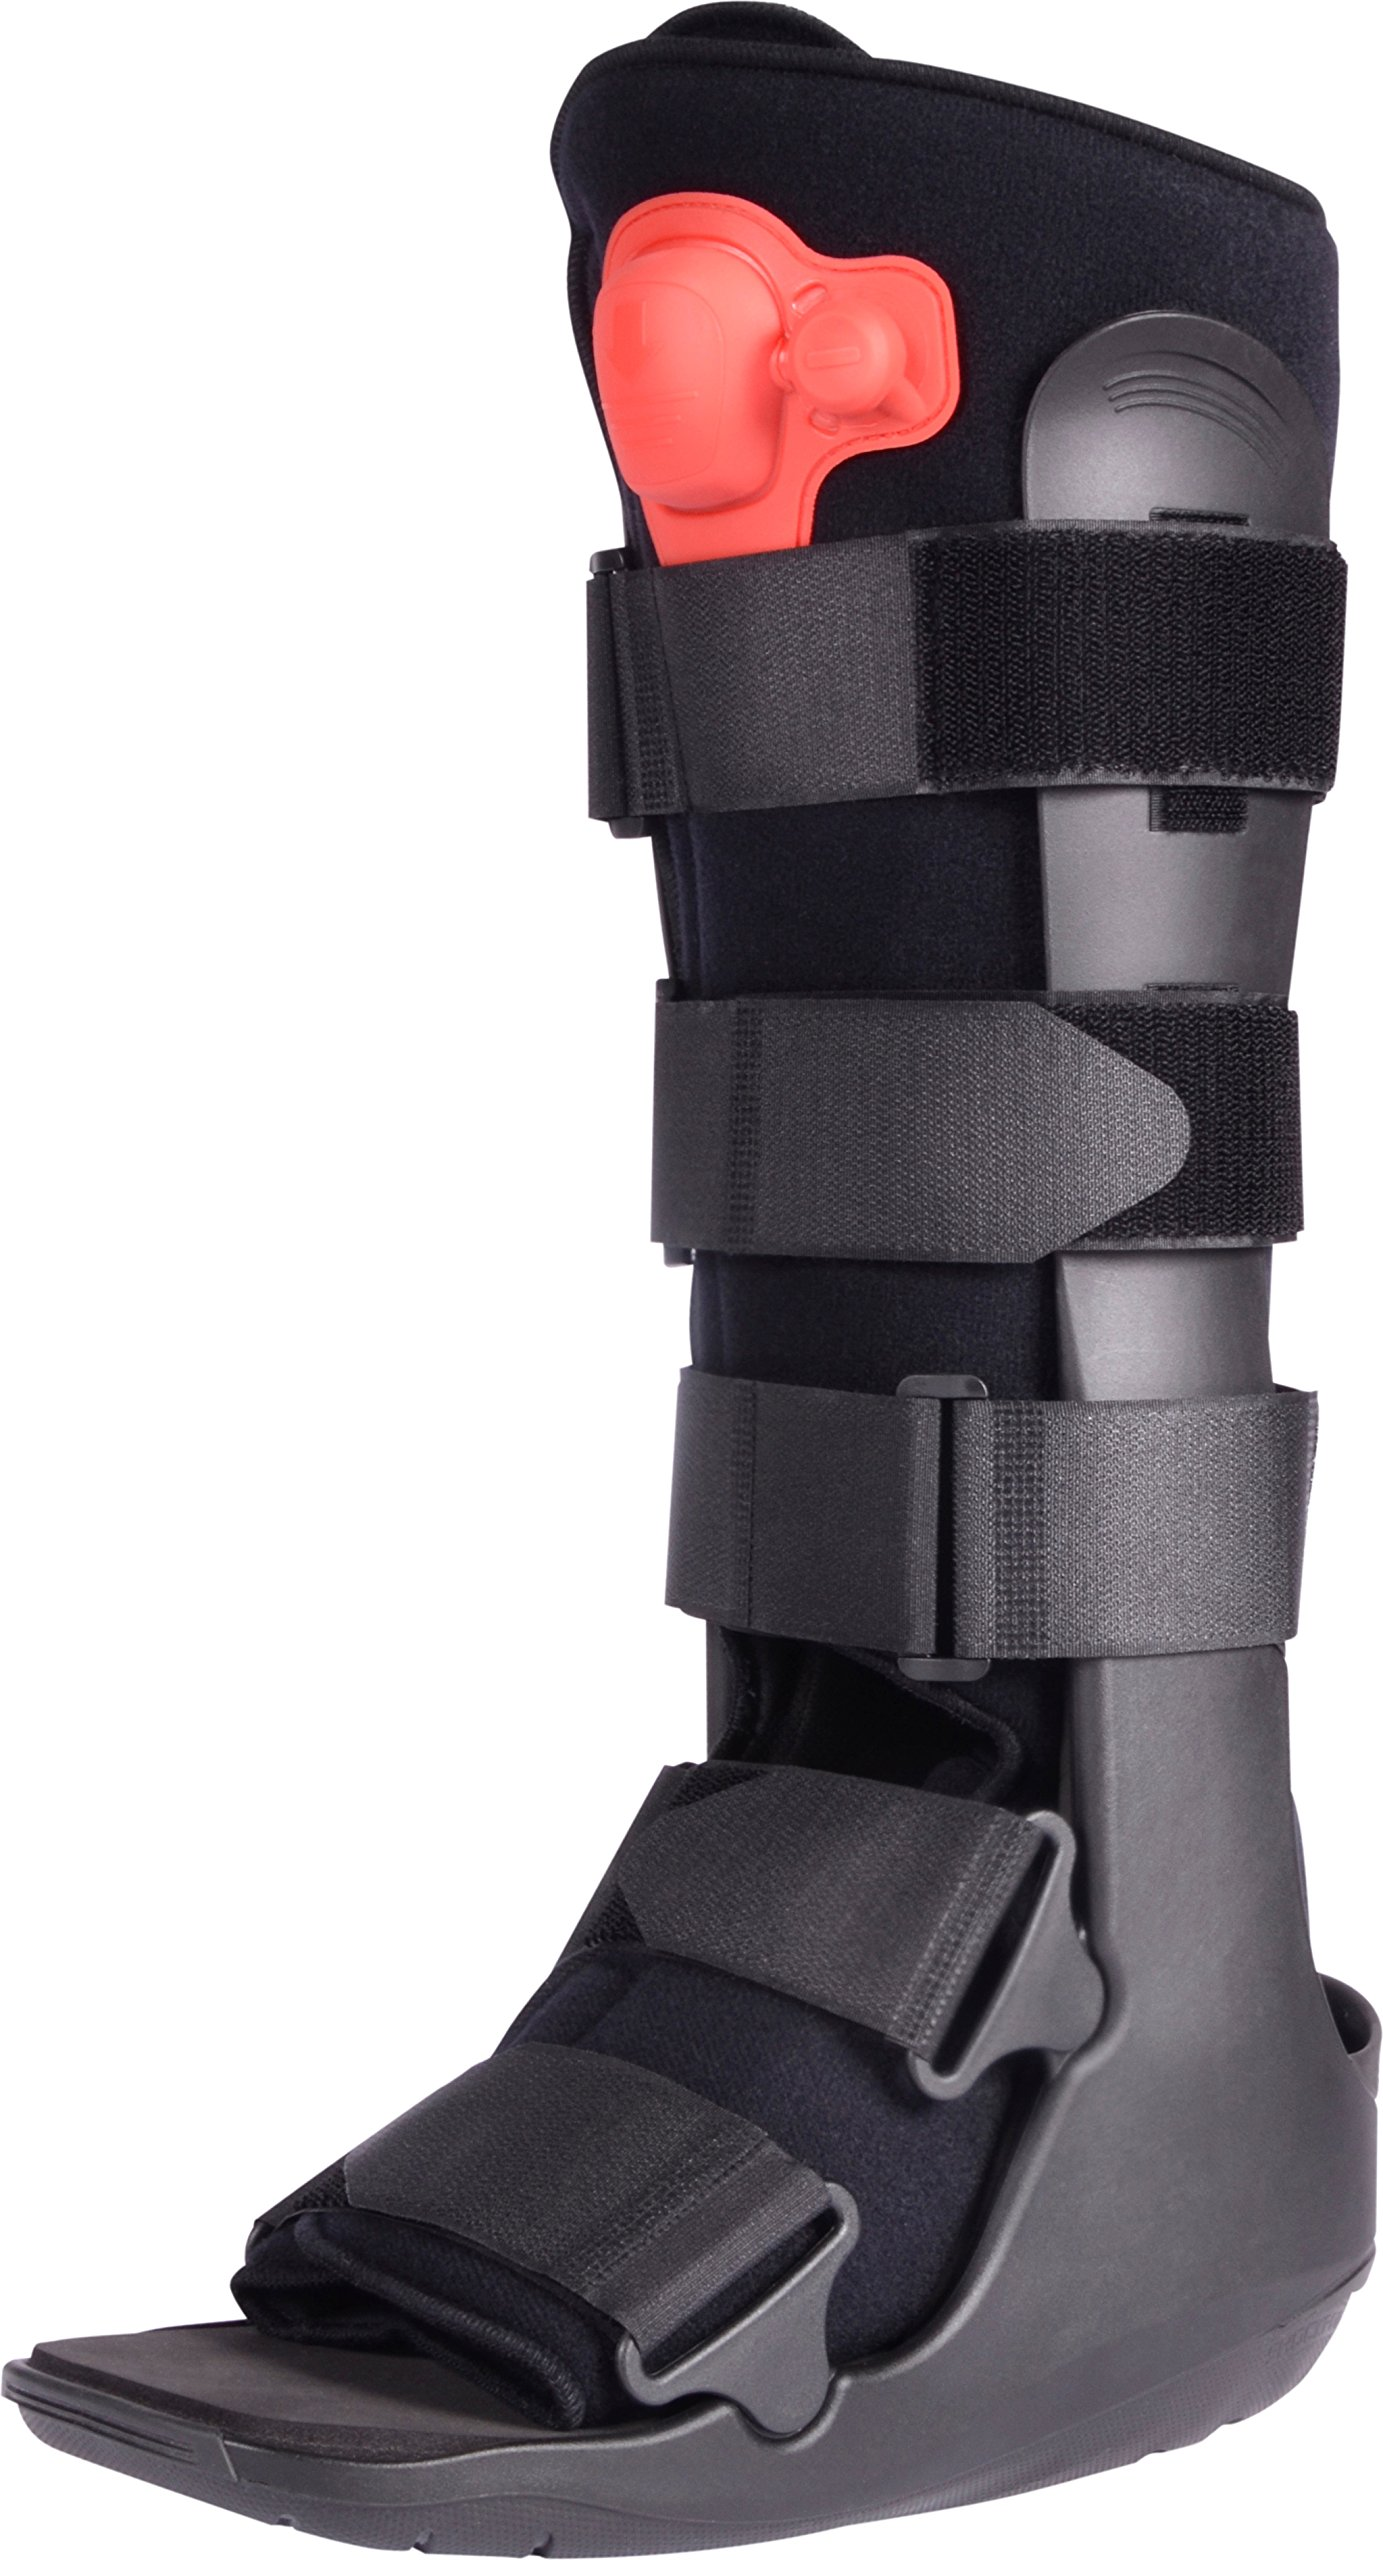 ProCare XcelTrax Air Tall Walker Brace / Walking Boot, Small by ProCare